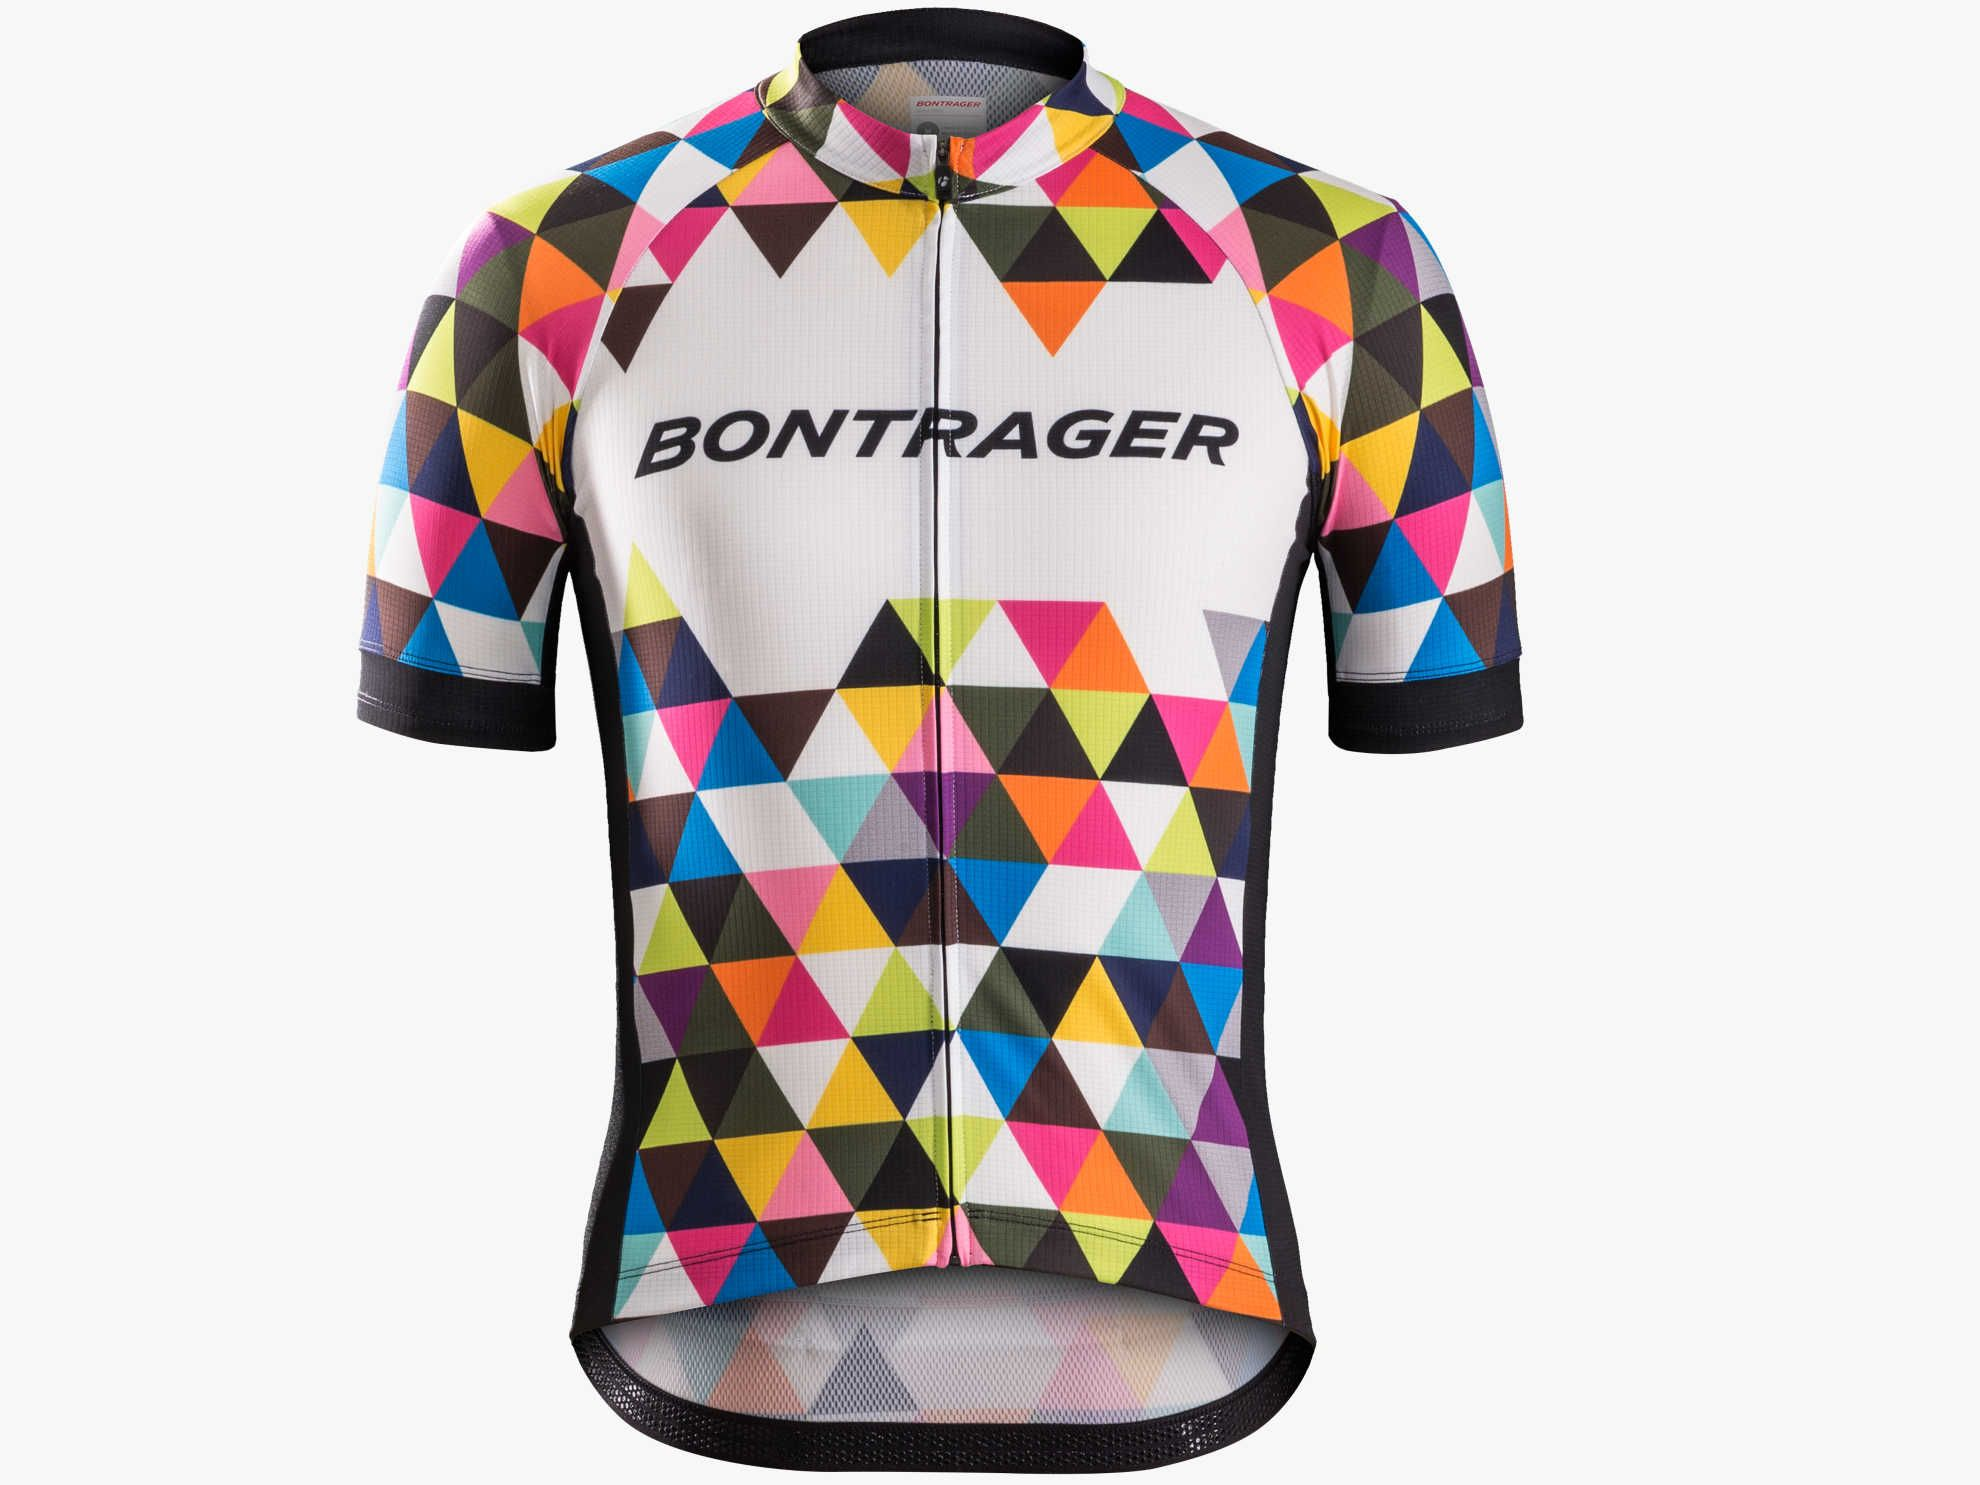 Bontrager Specter Jersey Cycling Jerseys Cycling Apparel